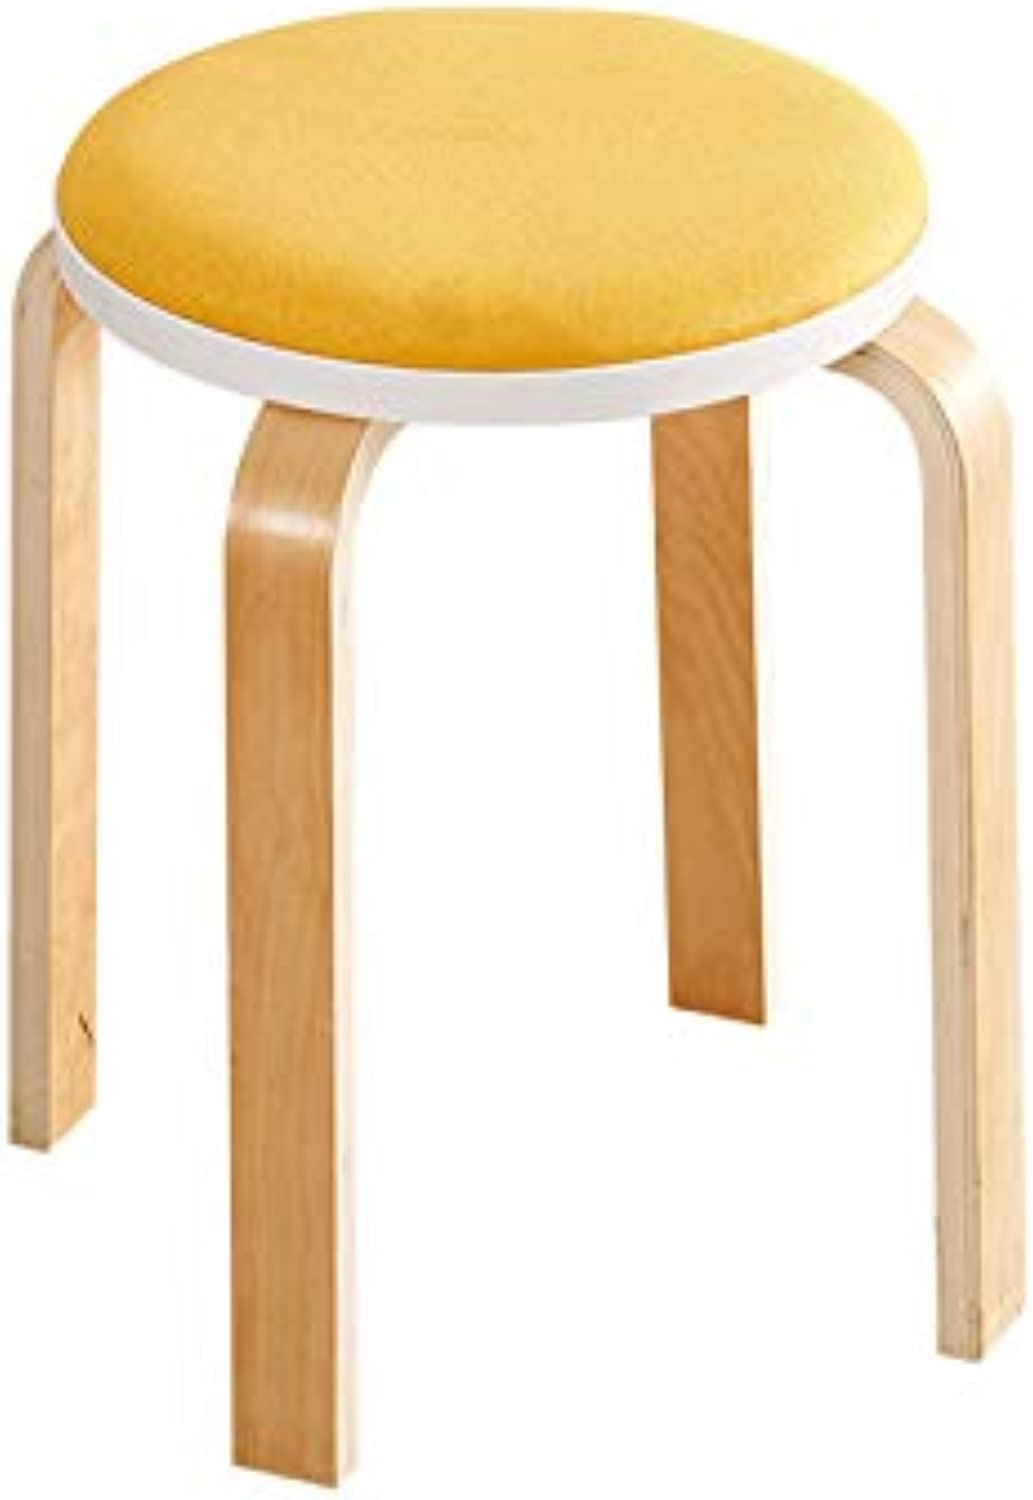 Small Bench Fashion Fabric Yellow Multi-Function Chair High Stool Dressing Stool Living Room Dining Room Bench (color   A, Size   45x32cm)